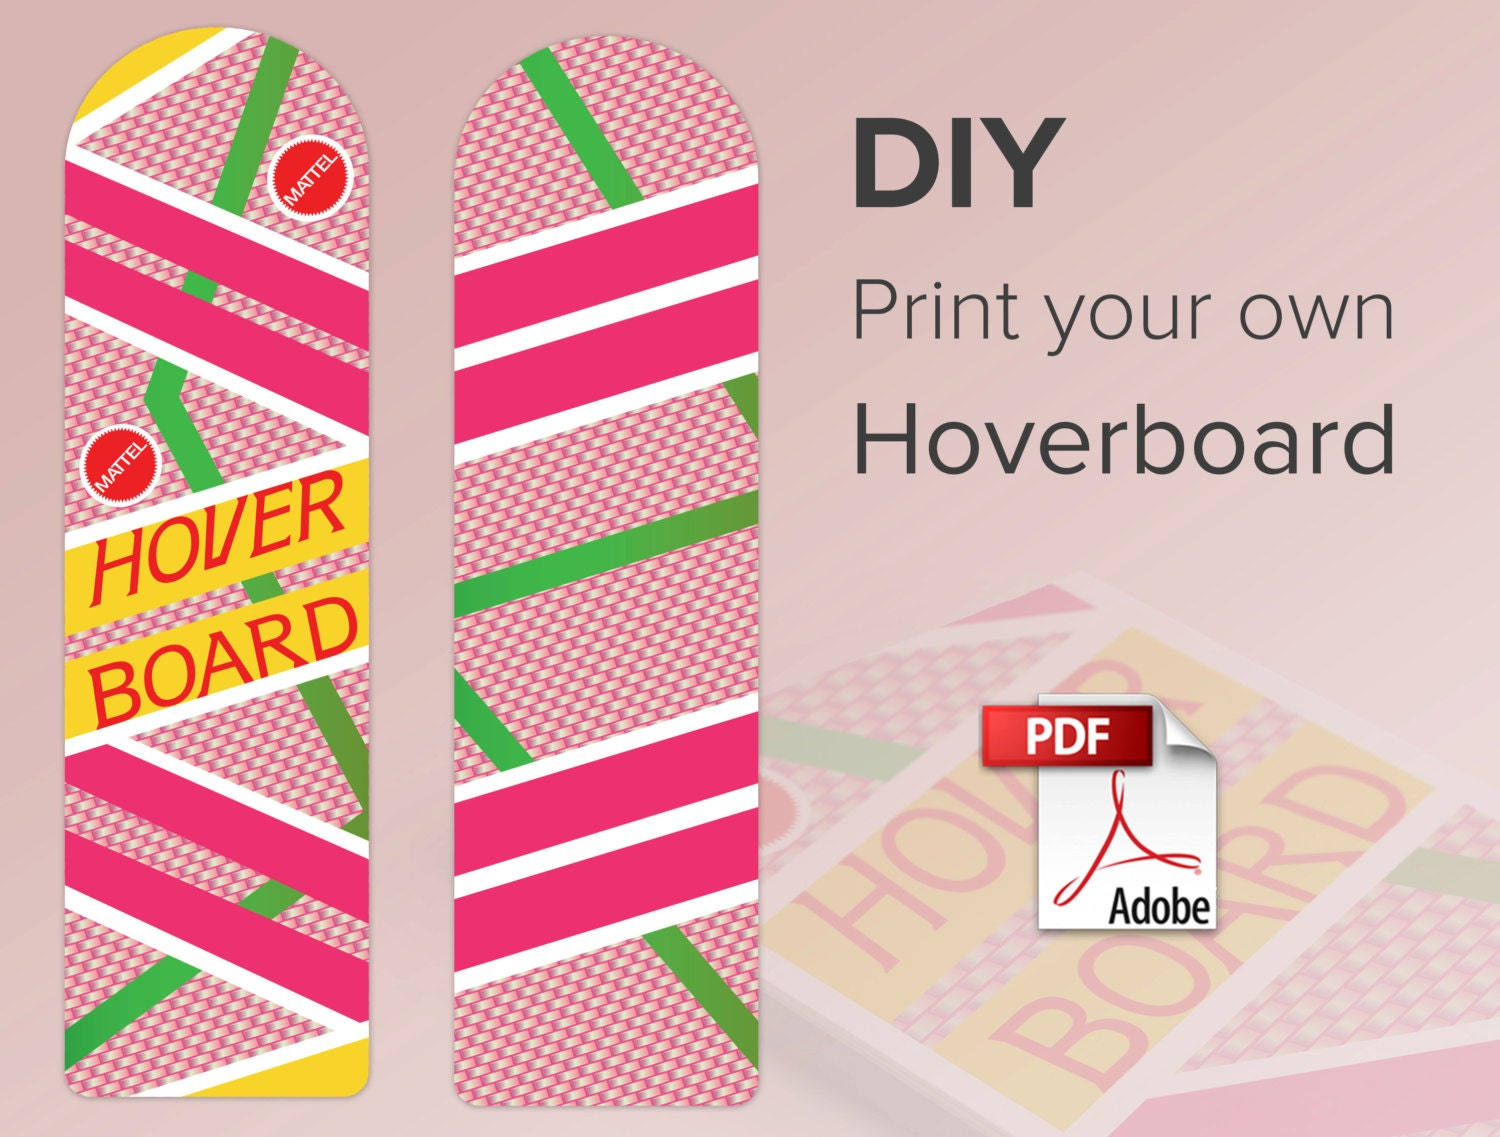 Hoverboard Print At Home Digital Download 300 Dpi